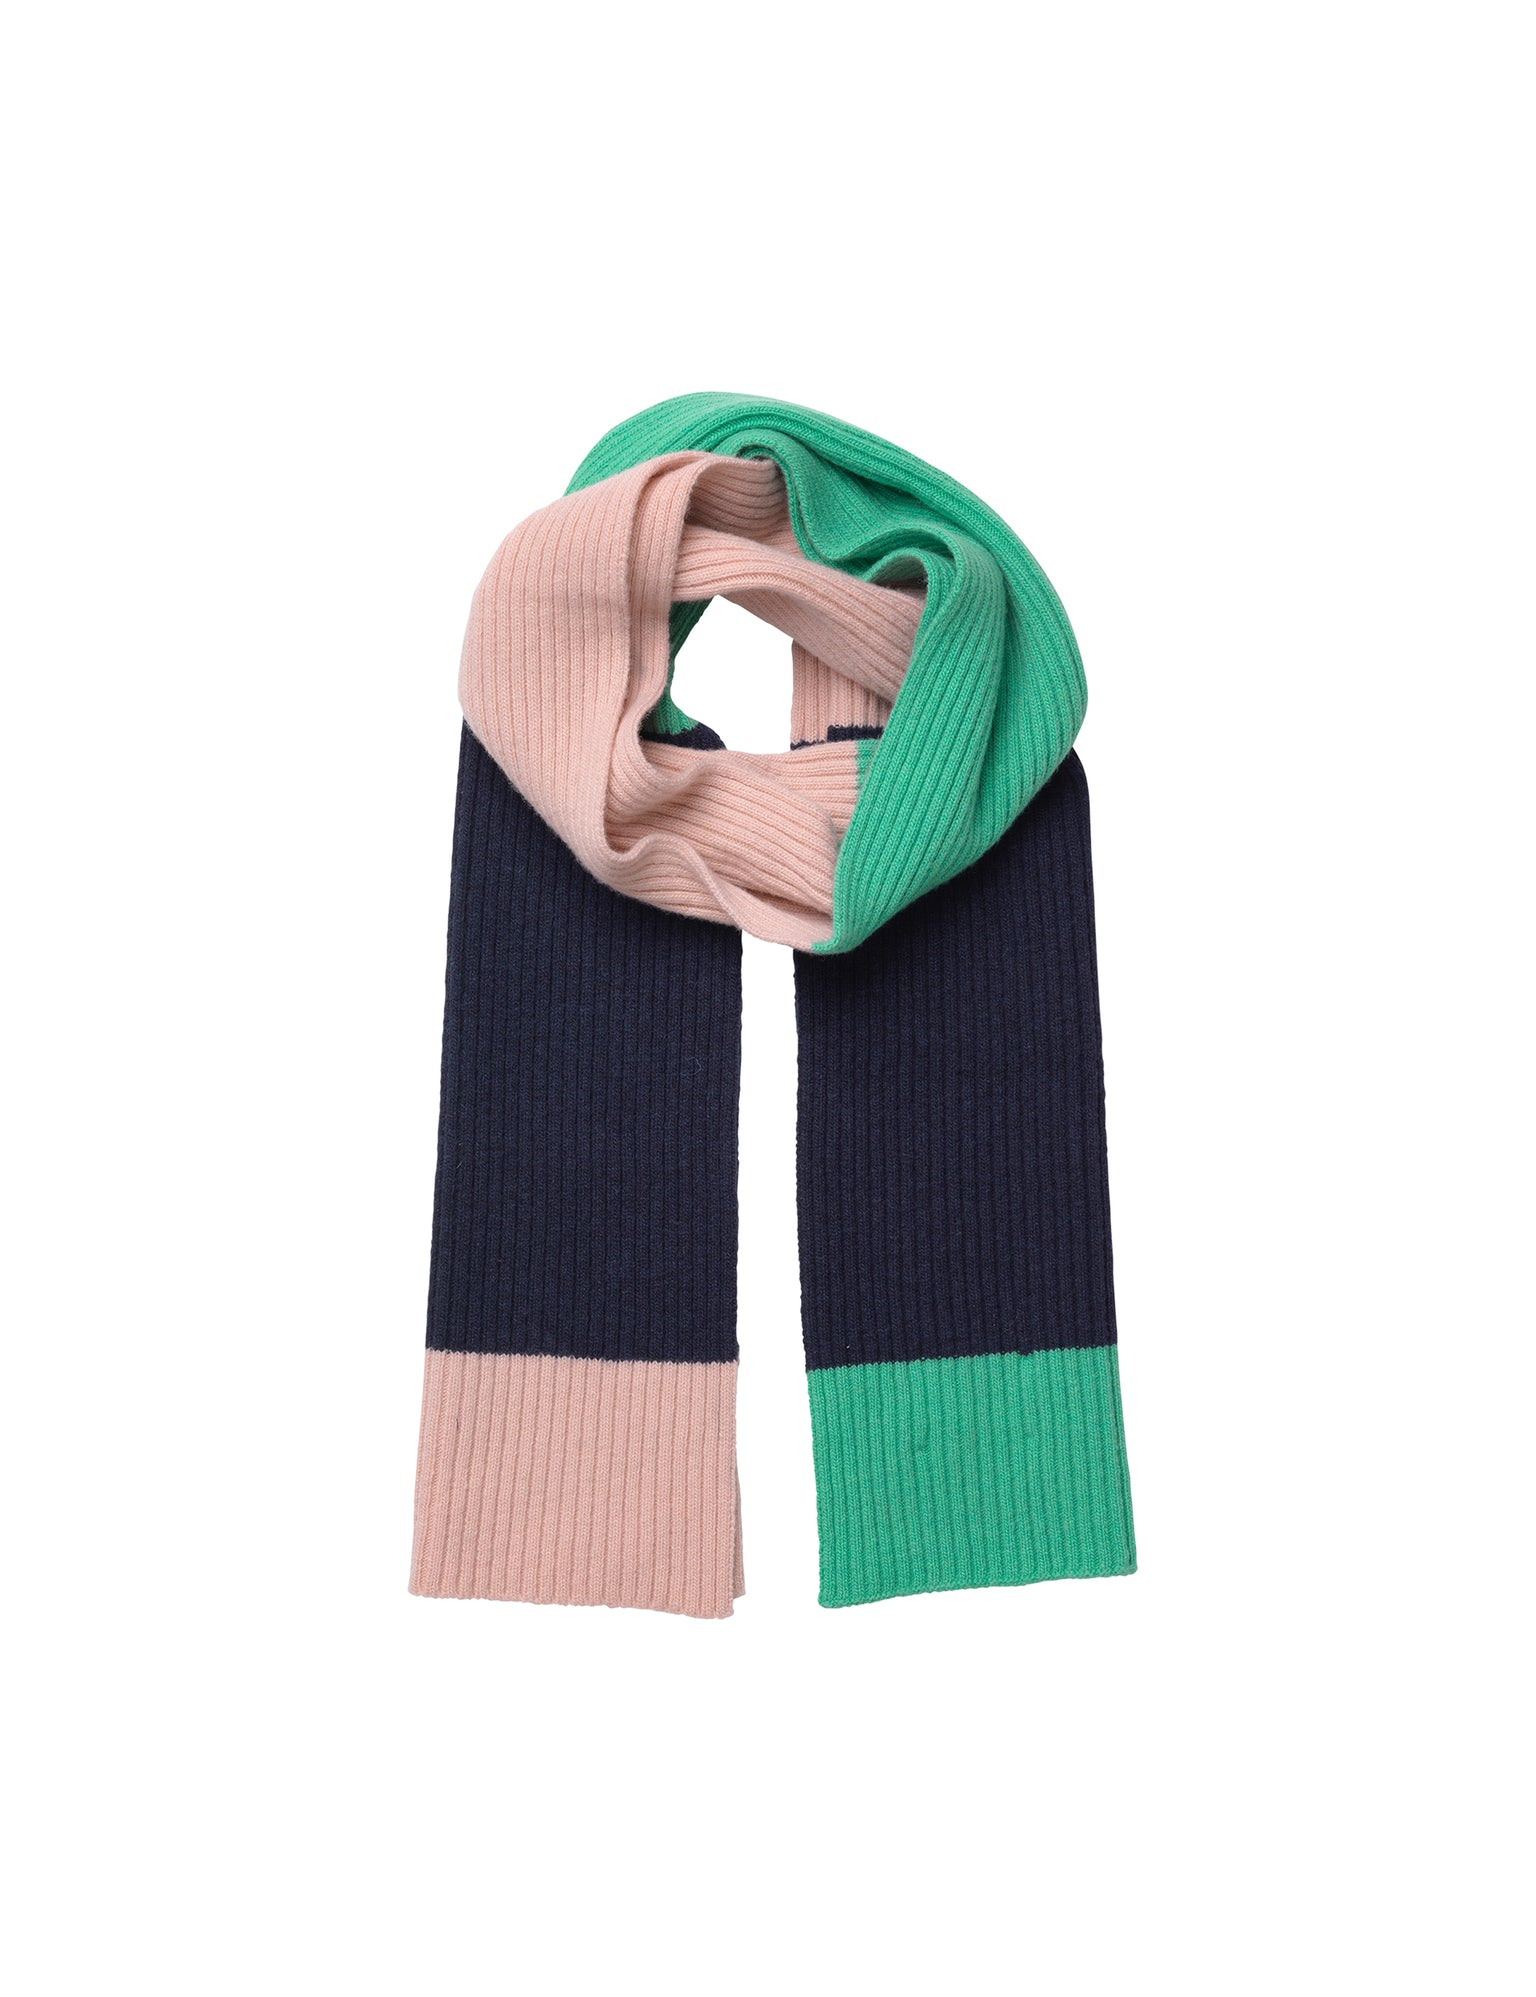 Sola Stormo, Very Green/Pink/Navy